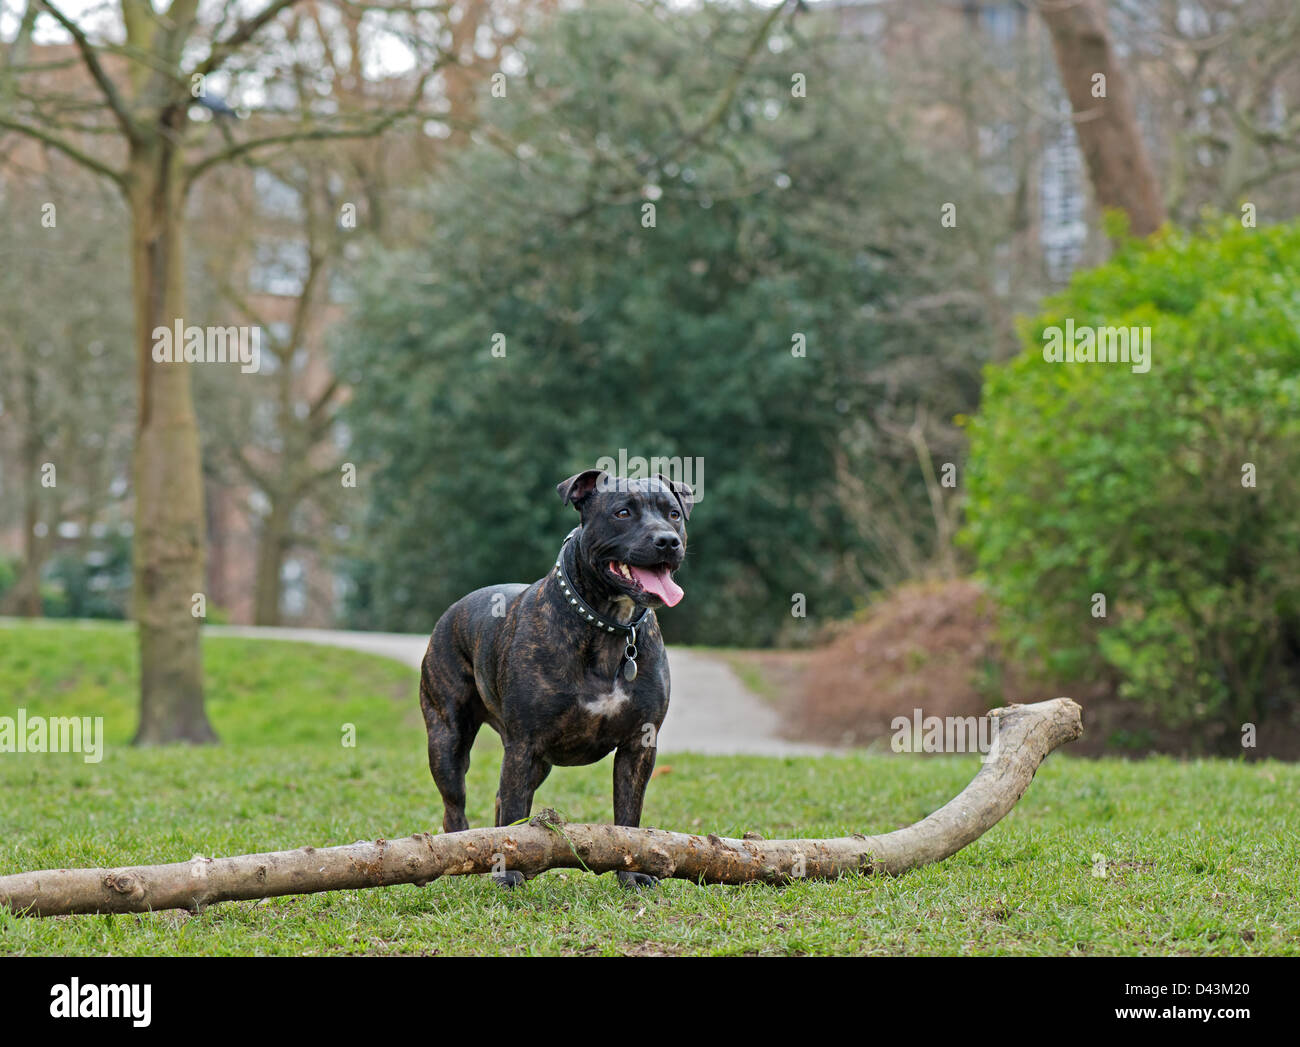 STAFFORDSHIRE BULL TERRIER DOG (CANIS LUPUS FAMILIARIS) IN PARK. UK - Stock Image